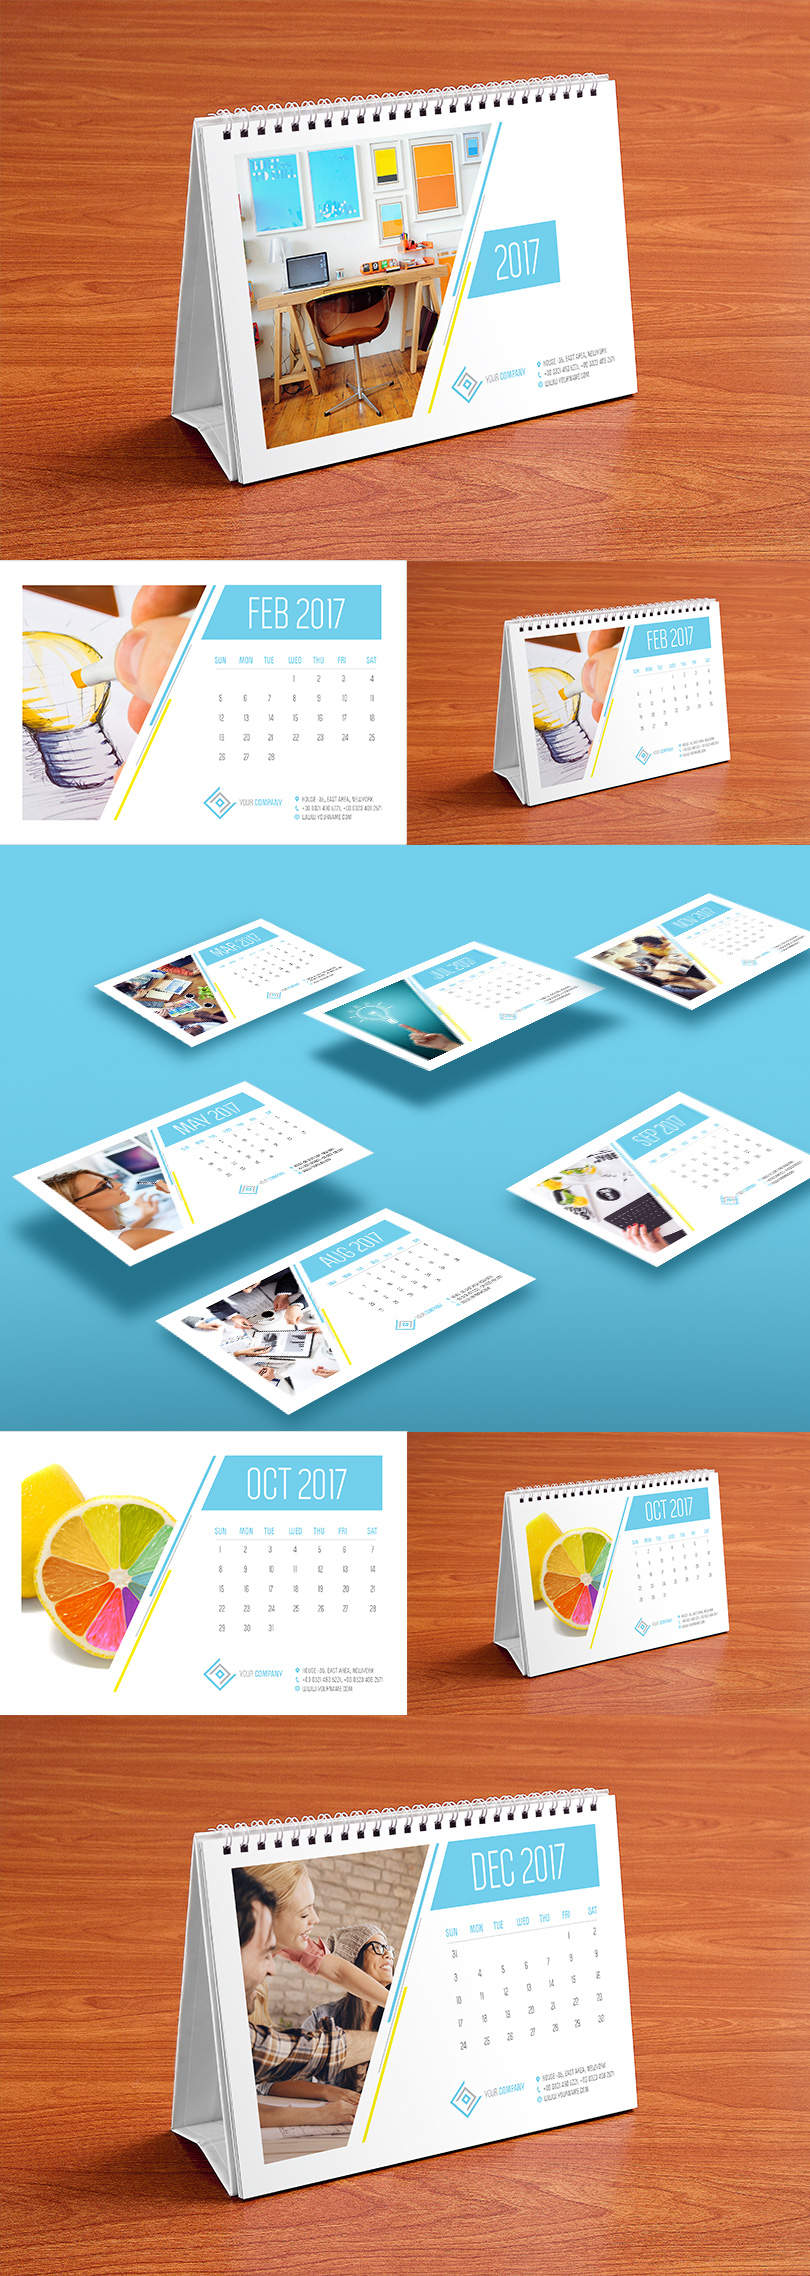 Calendar Design Software : Table calendar design template and mock up psd